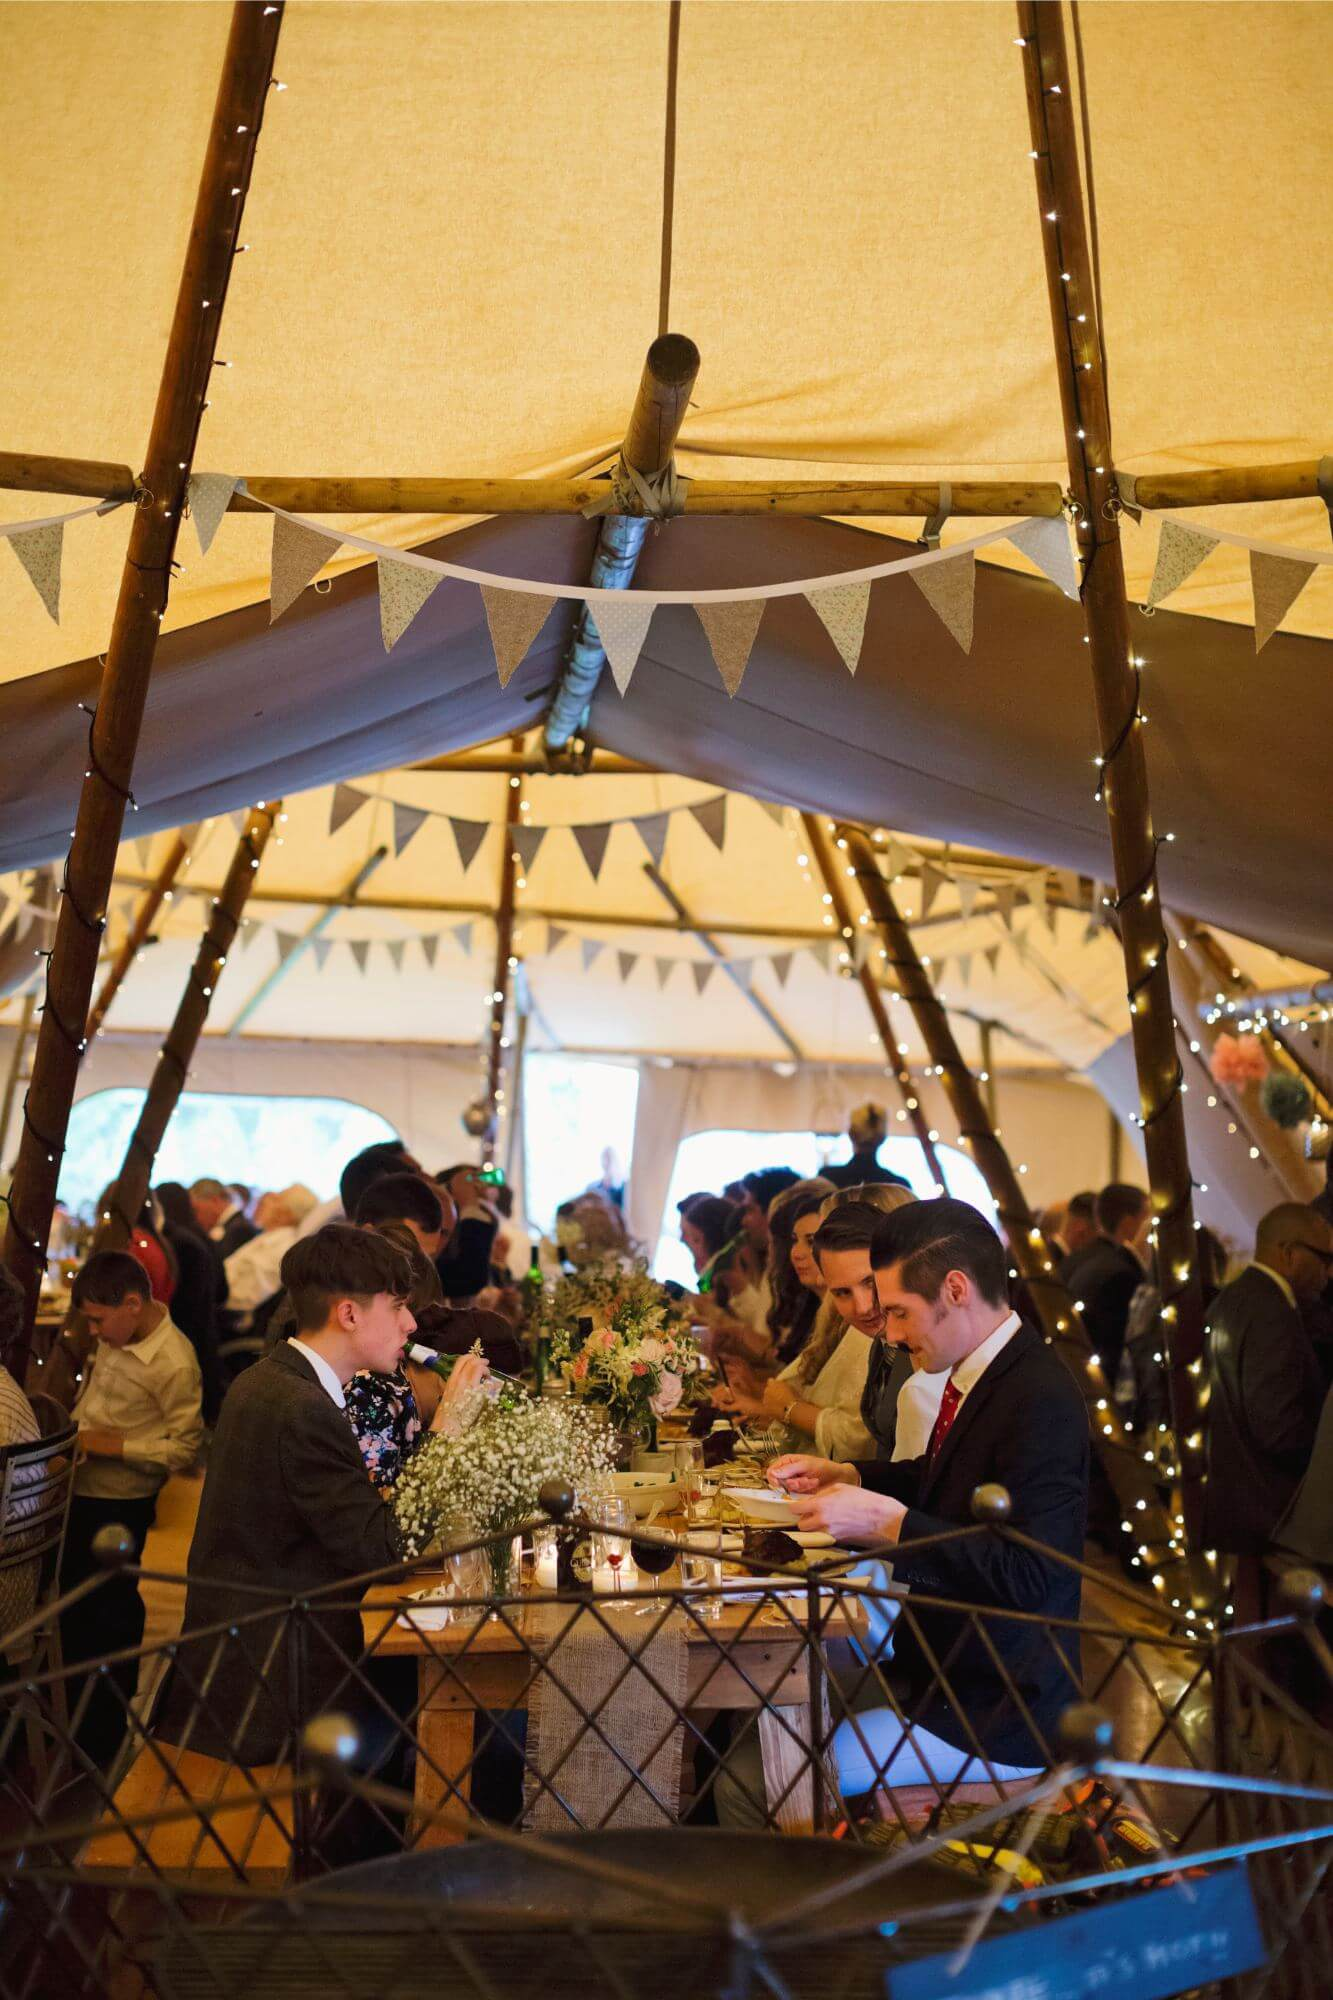 An inside photograph of the inside of a Tipi, setup with beautiful lighting, flowers and dining ware. with people enjoying food